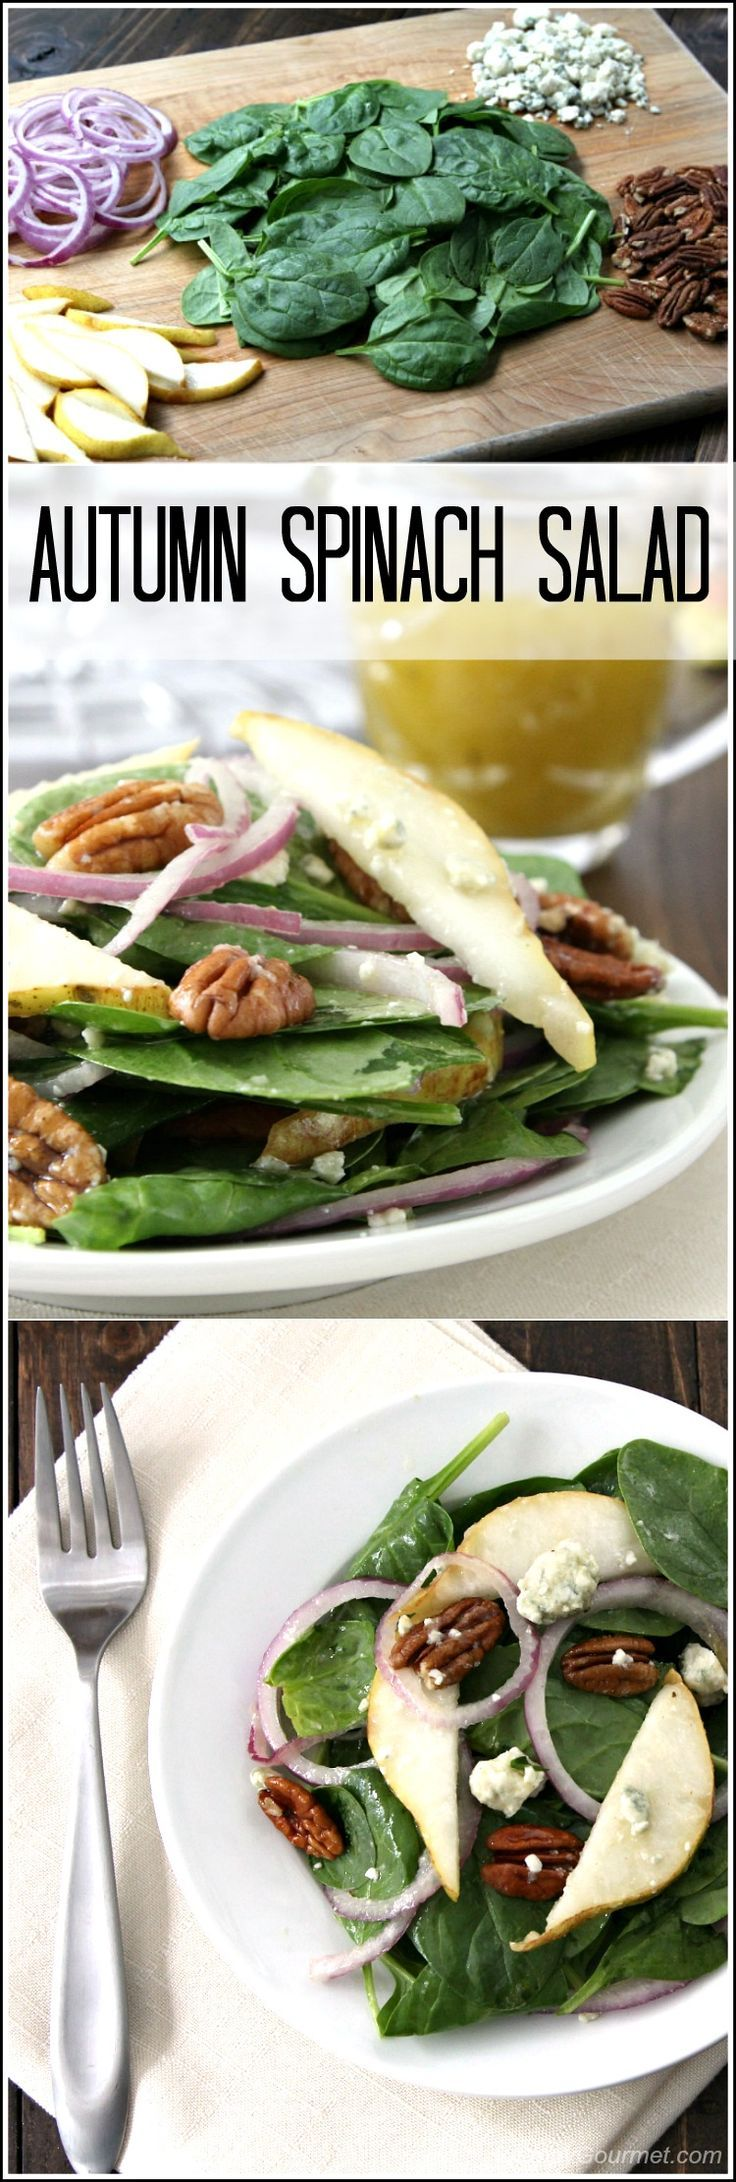 Autumn Spinach Salad, an easy fall side salad or main dish recipe. Perfect healthy side dish for the holidays including Christmas and Thanksgiving! Low Carb and Gluten Free. Delicious sweet and tangy homemade salad dressing sweetened with @SPLENDA . #SweetSwaps (ad)